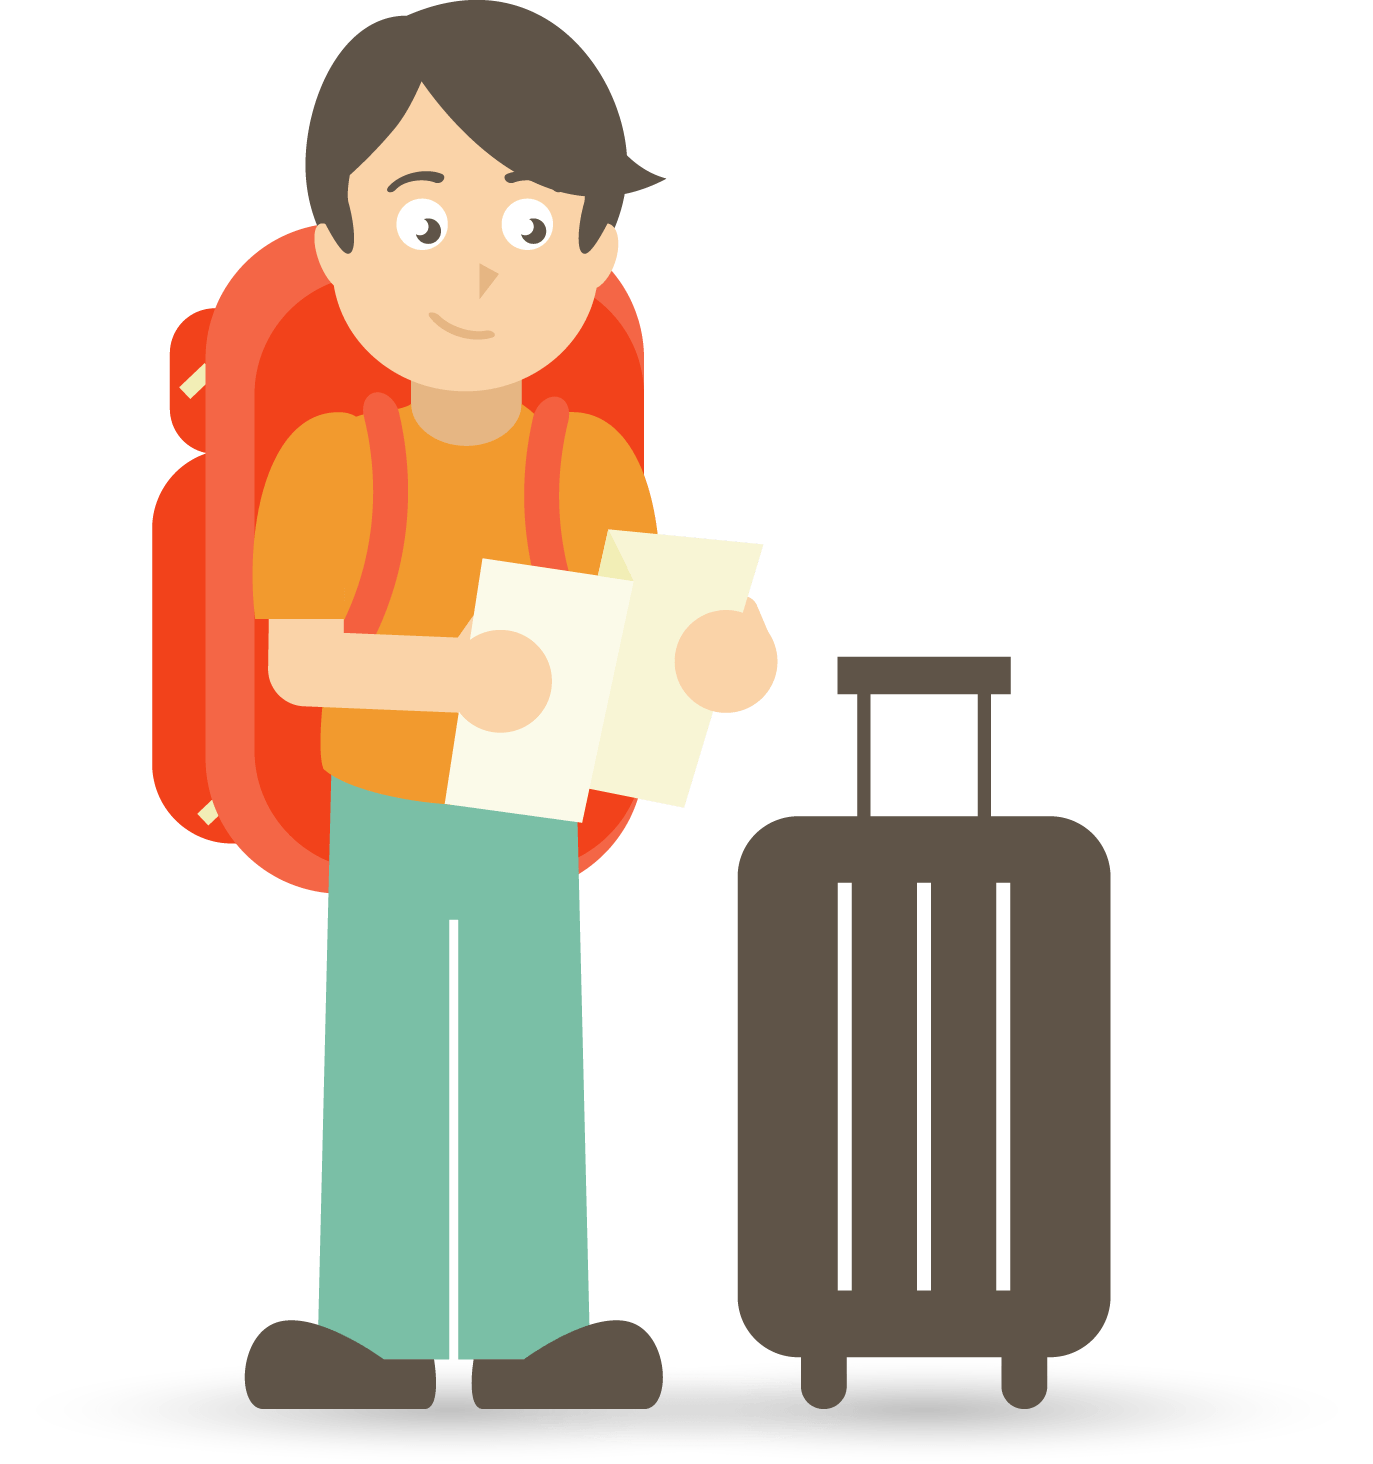 What you should know. Luggage clipart lost luggage